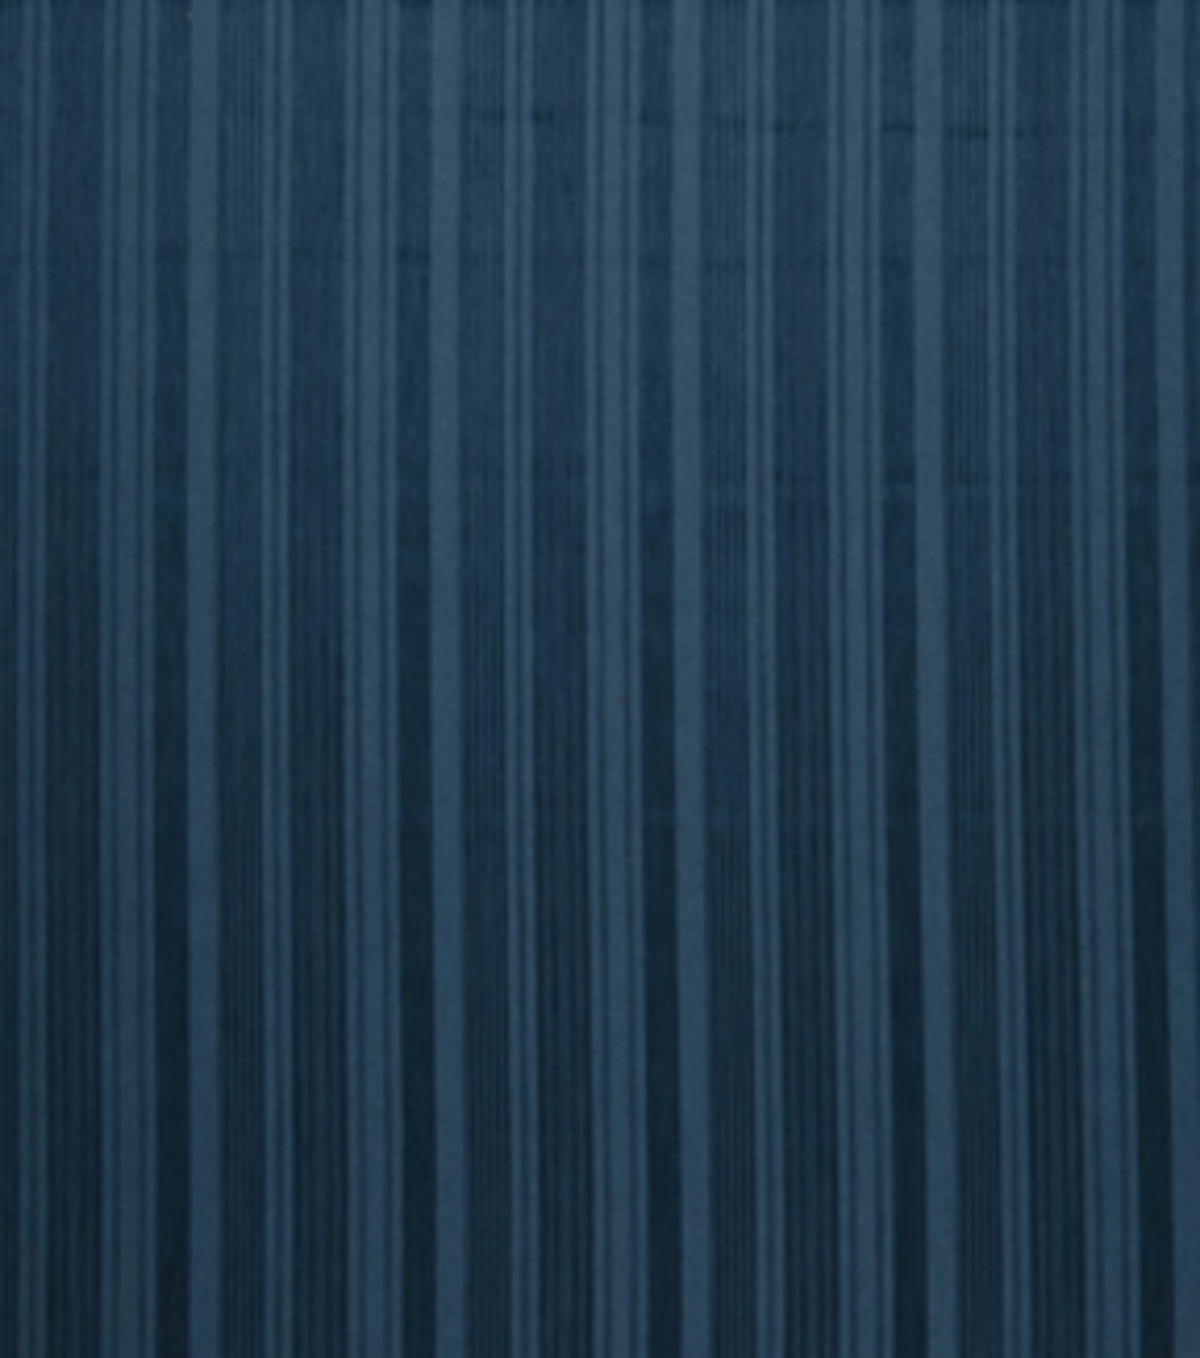 8\u0027\u0027x8\u0027\u0027 Home Decor Fabric Swatch-Solid Fabric Eaton Square Larson Azure